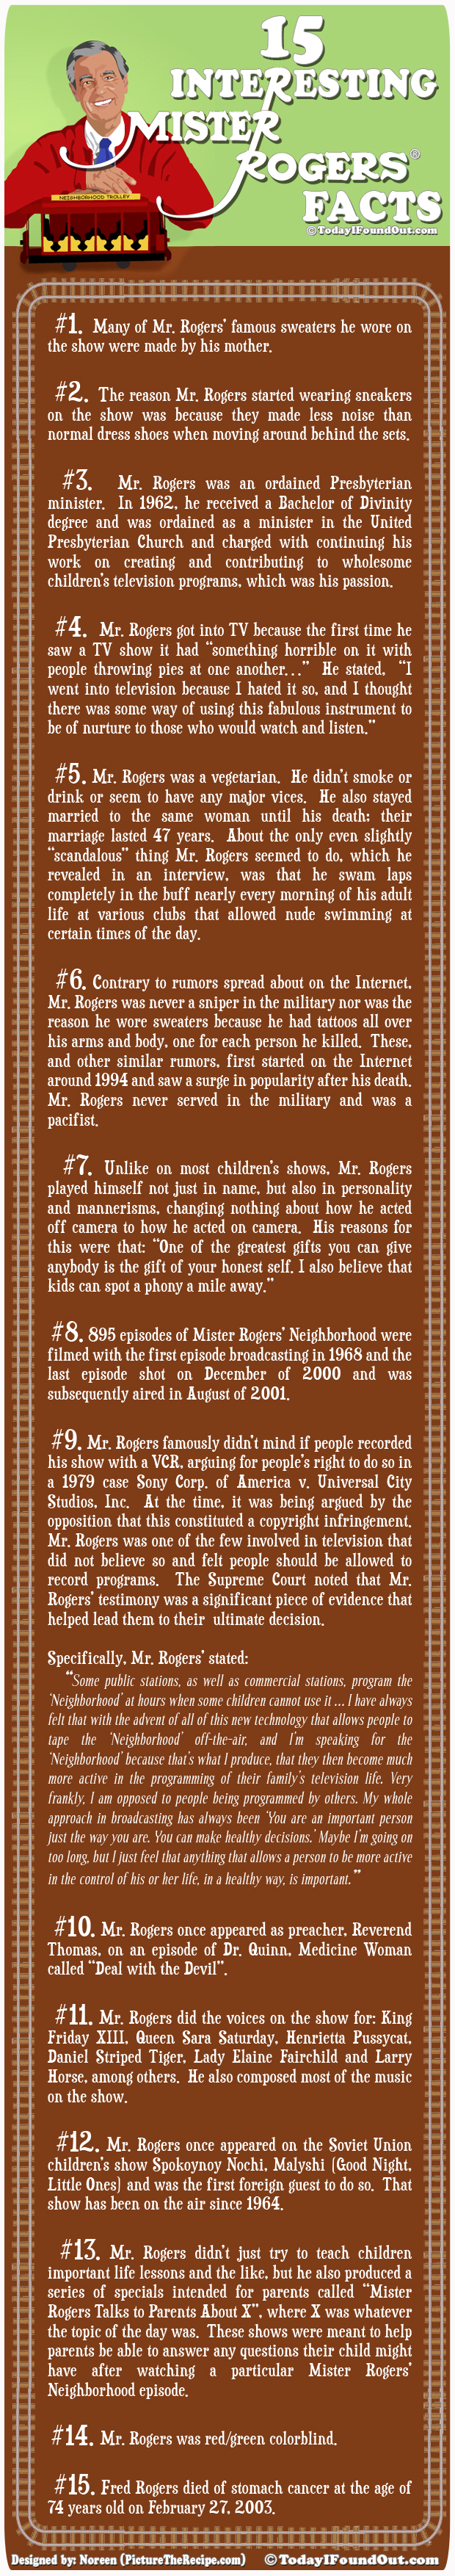 15-Interesting-Mister-Rogers-Facts